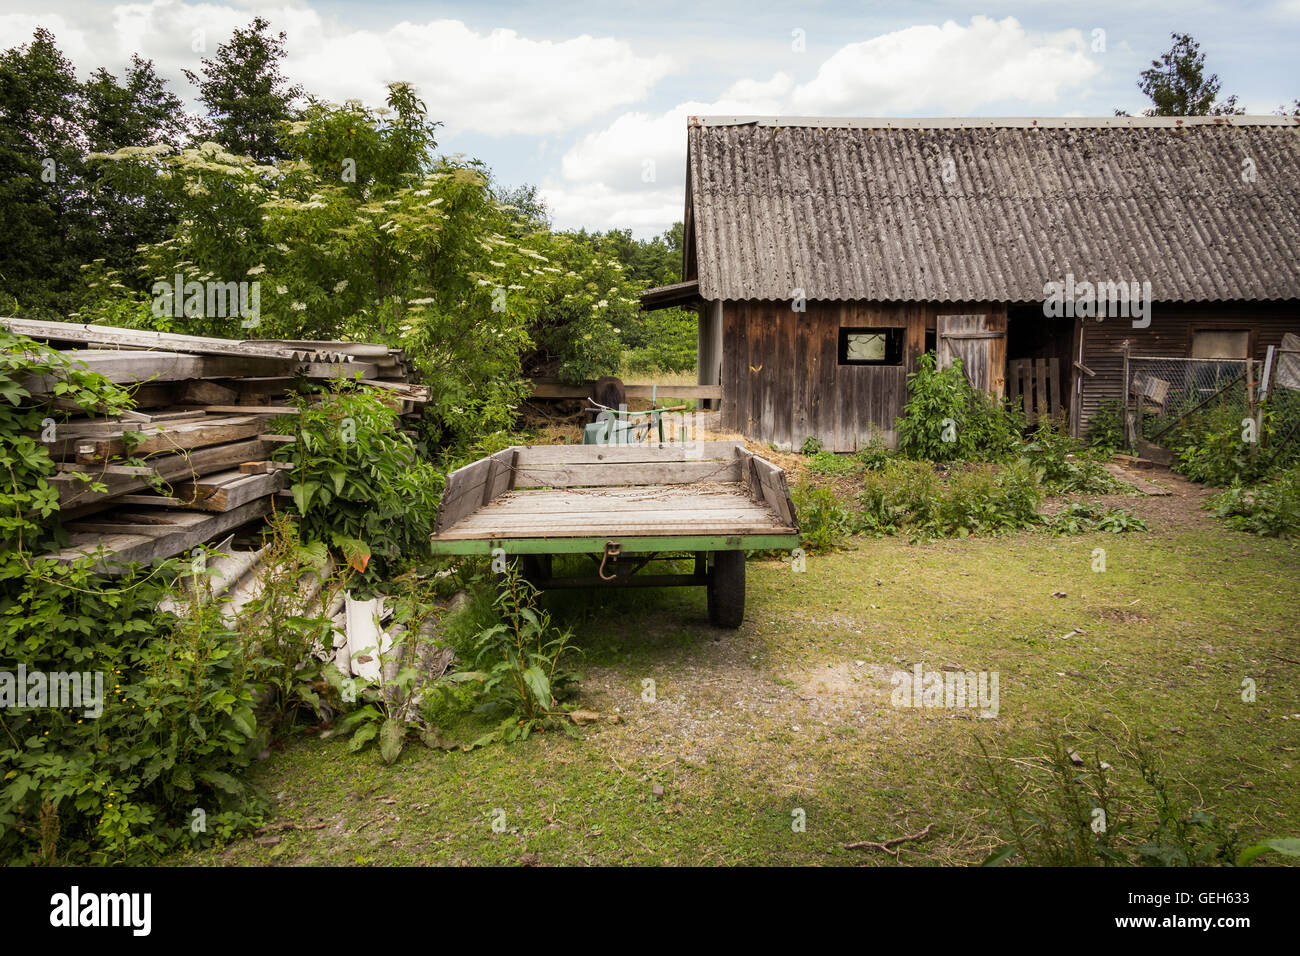 Rural landscape with a wooden hut - Spreewald, Germany. - Stock Image